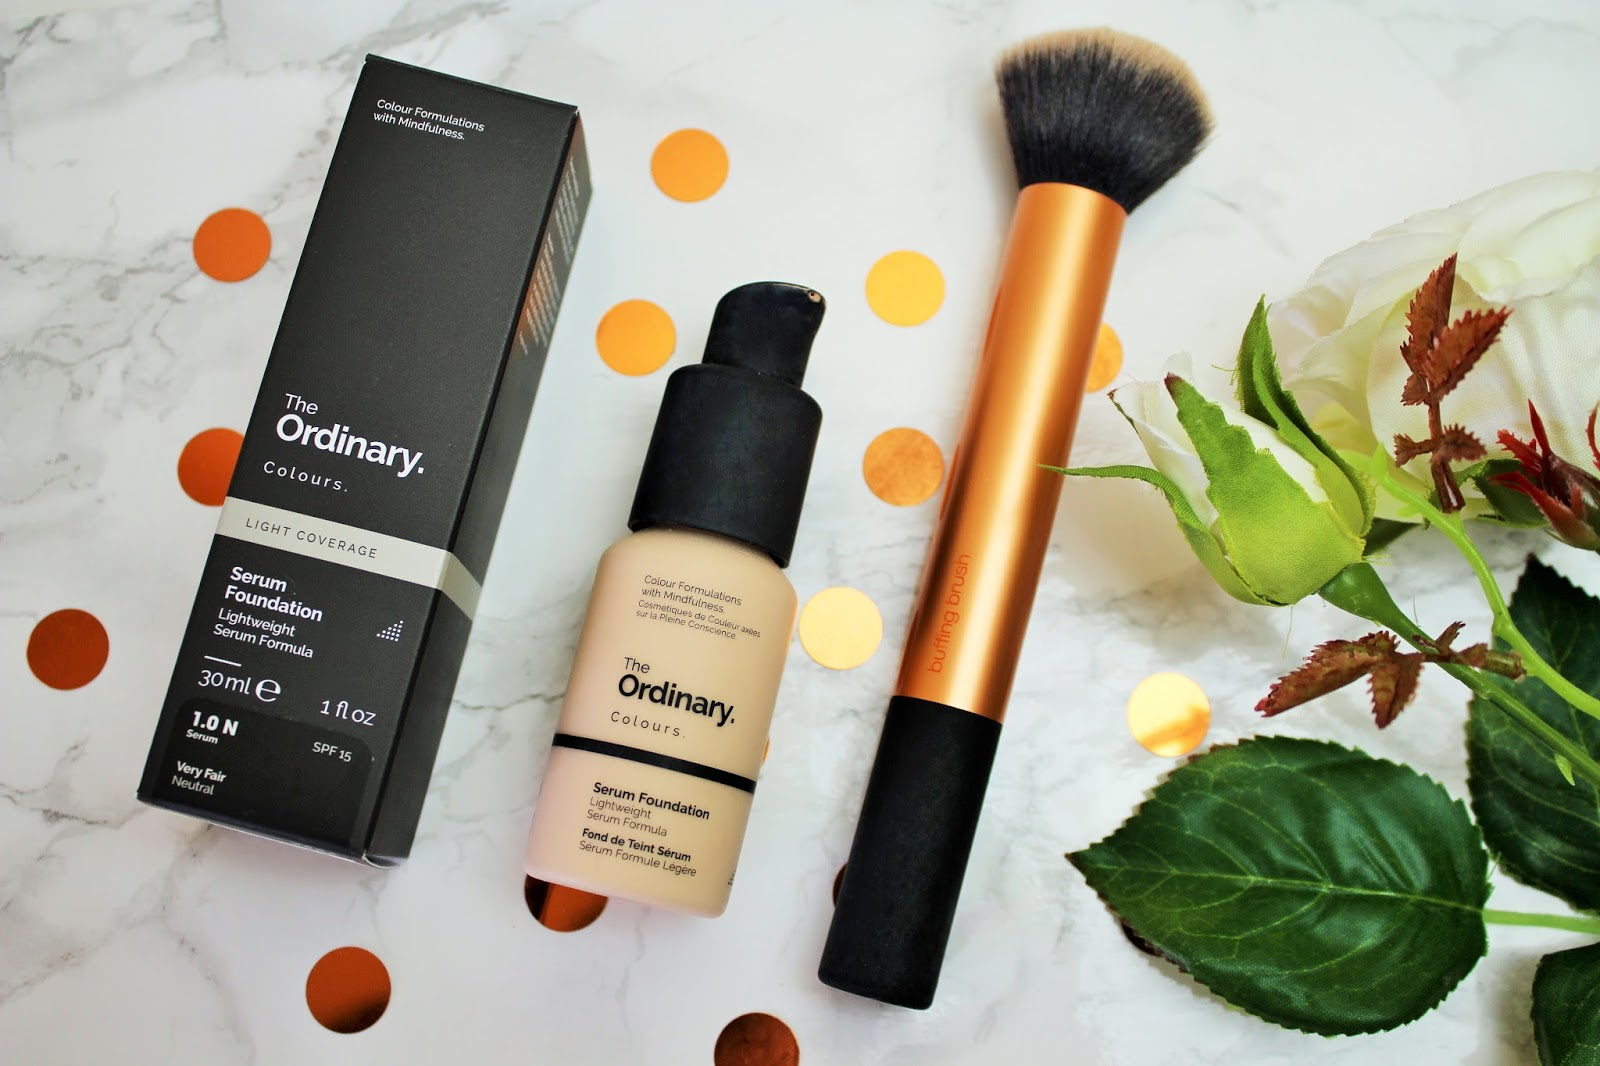 The Ordinary Serum Foundation Review - Does Your Skin Type Matter? - 7